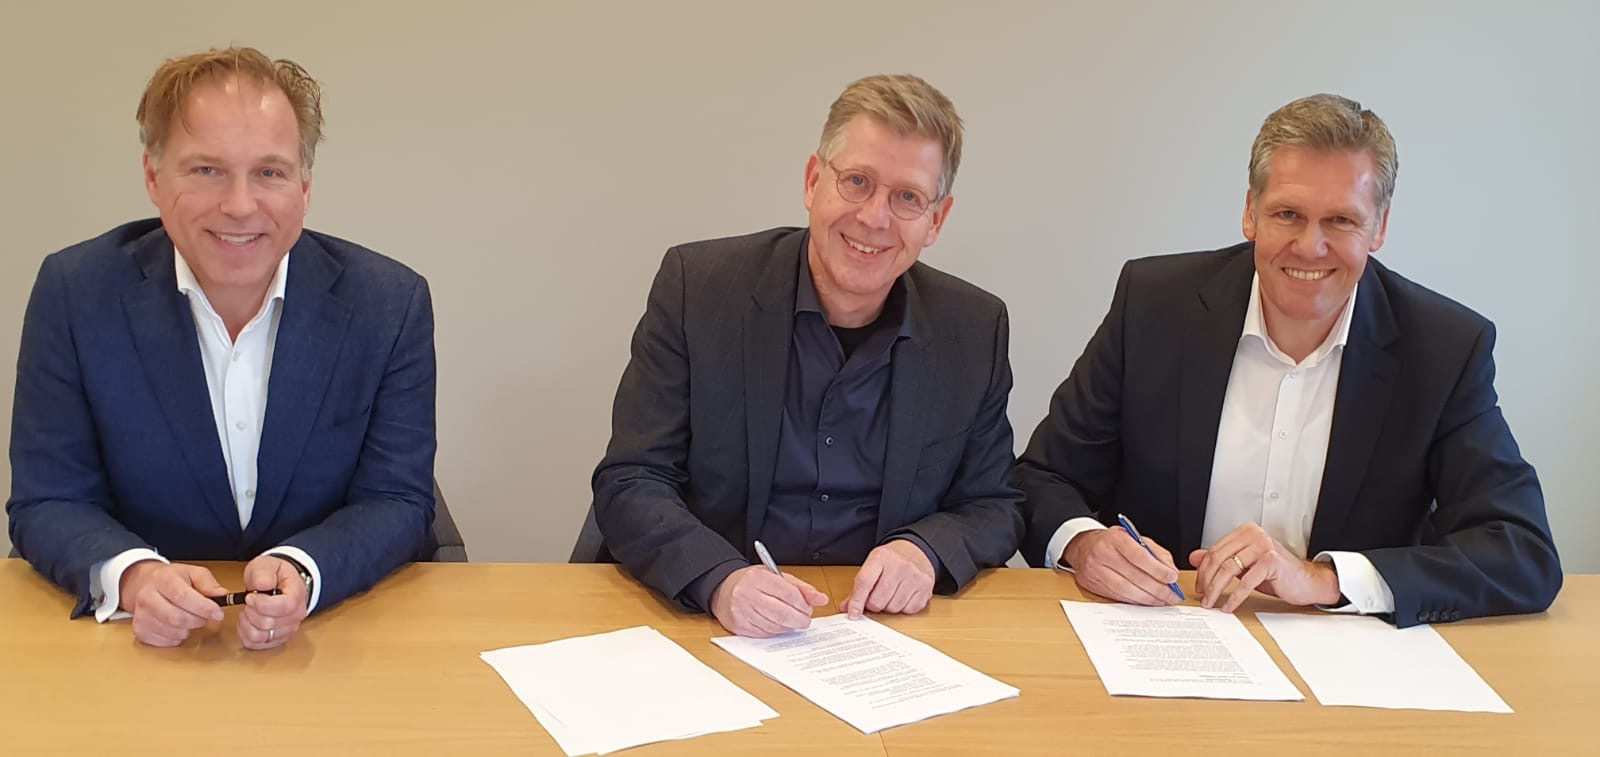 Kees Snel Associate Partner InterExcellent IT Regie Management